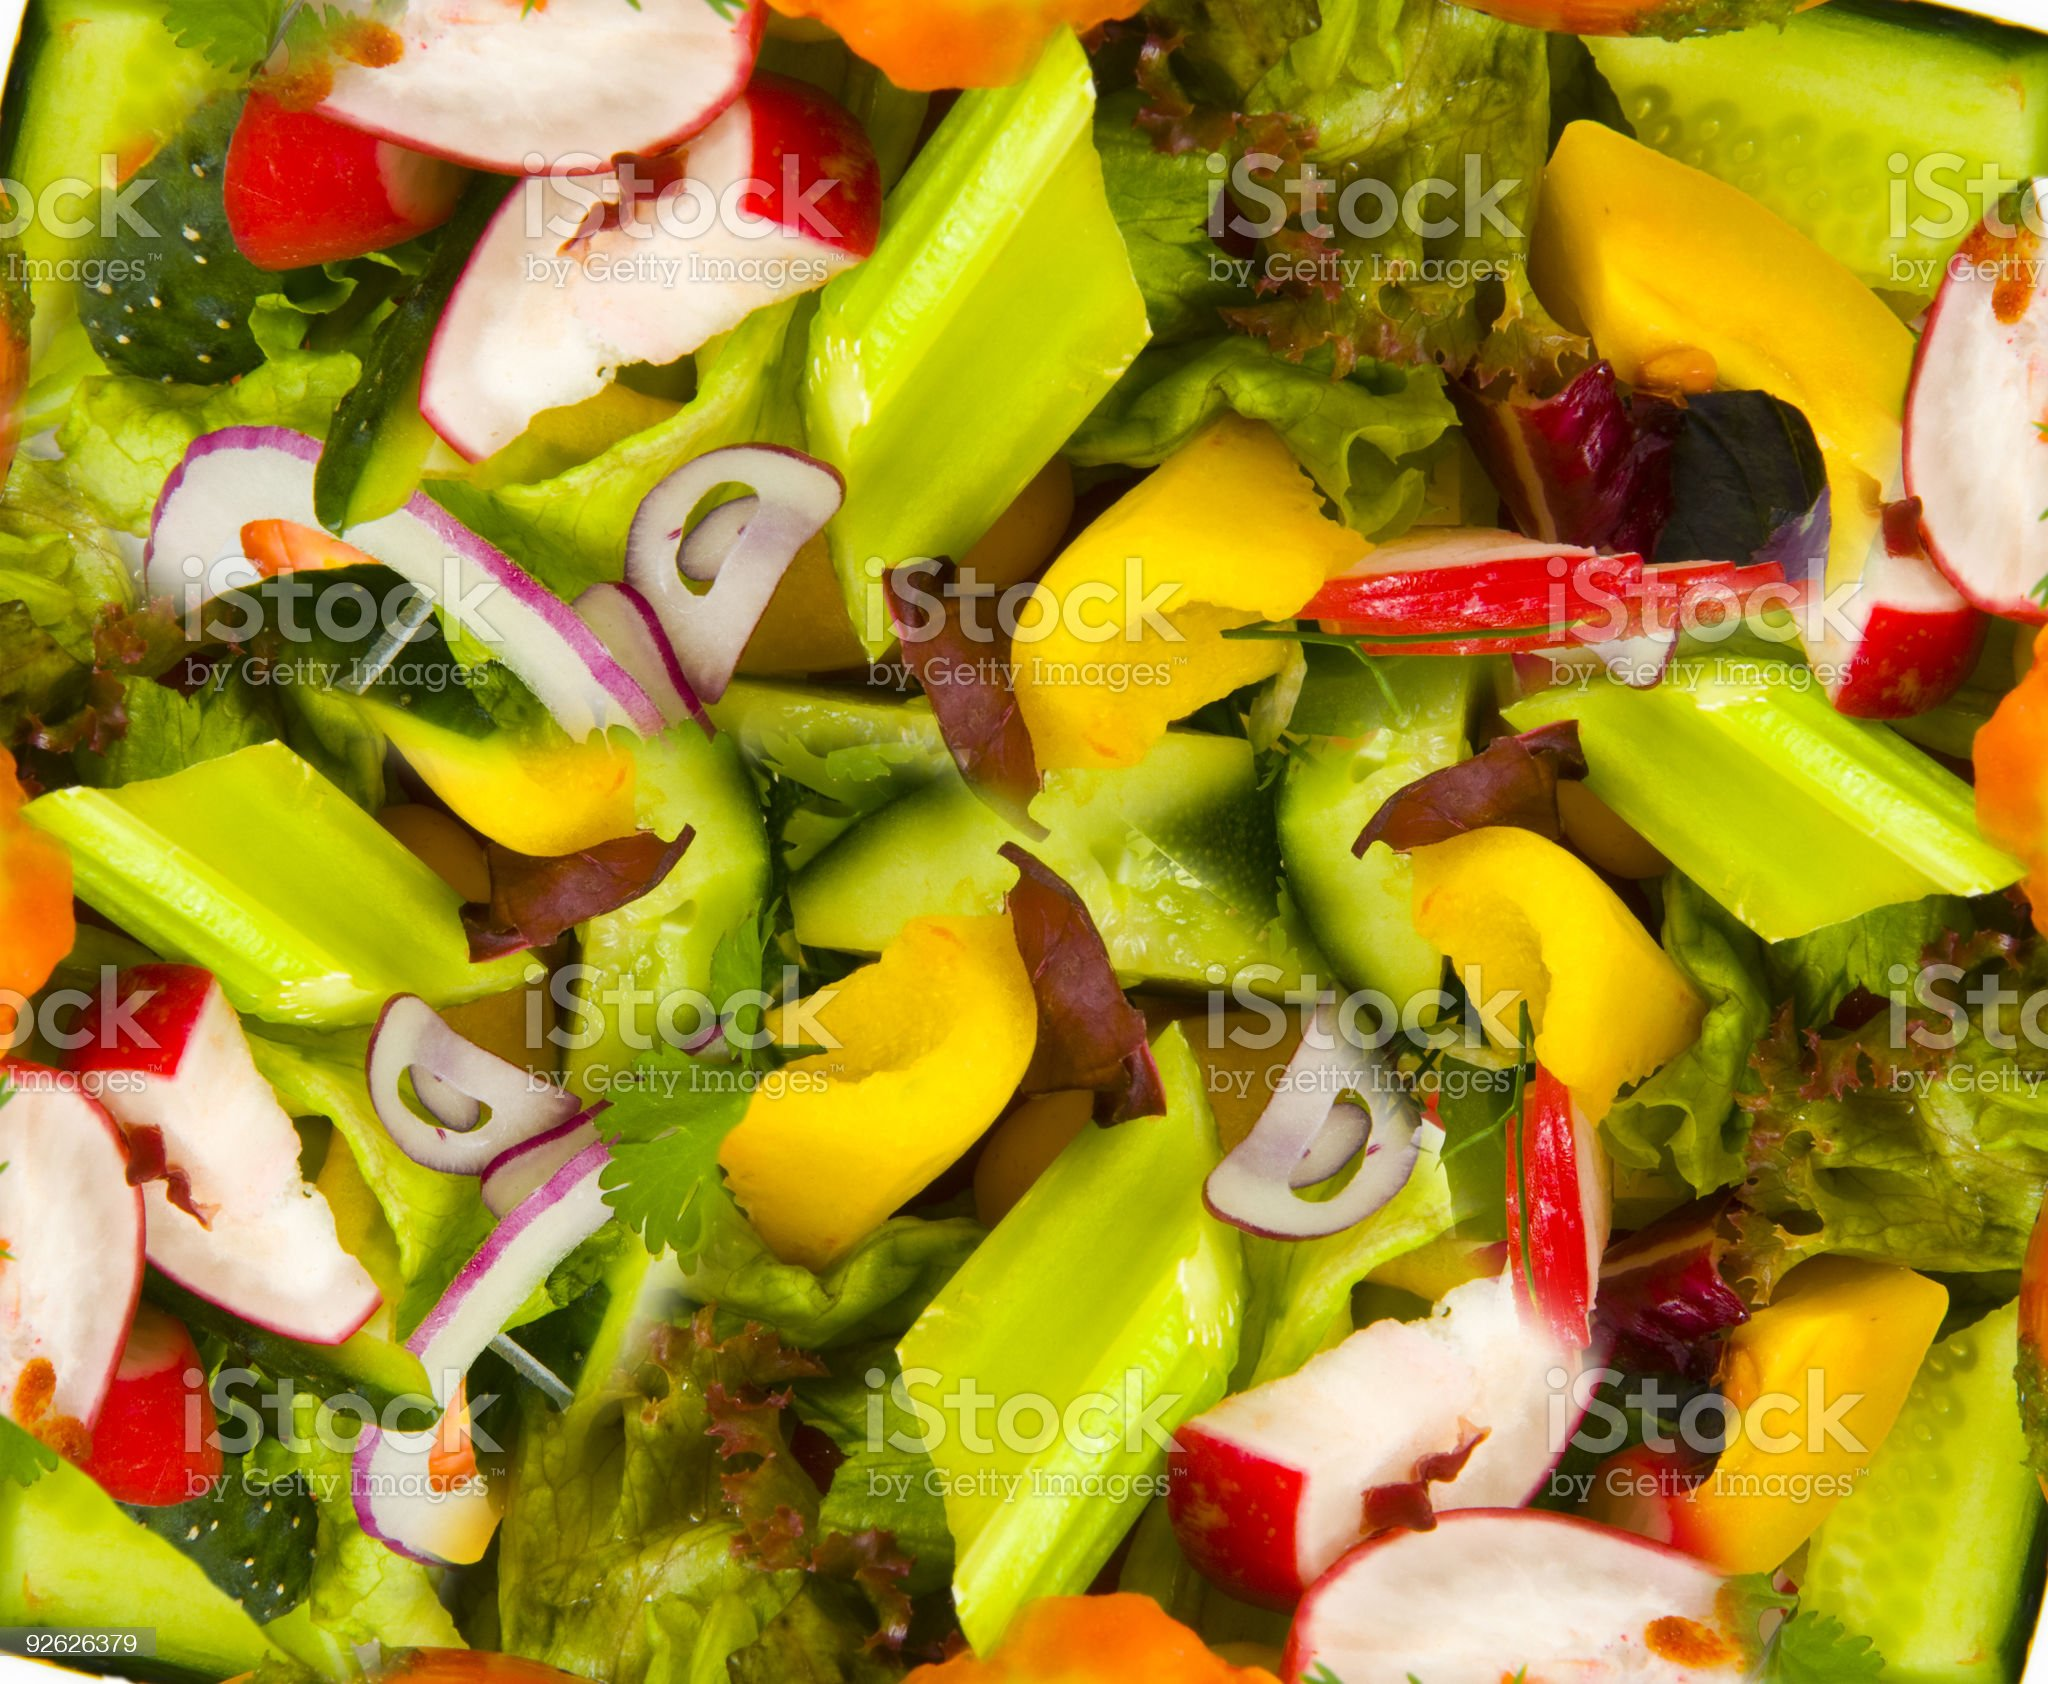 Vegetable background royalty-free stock photo